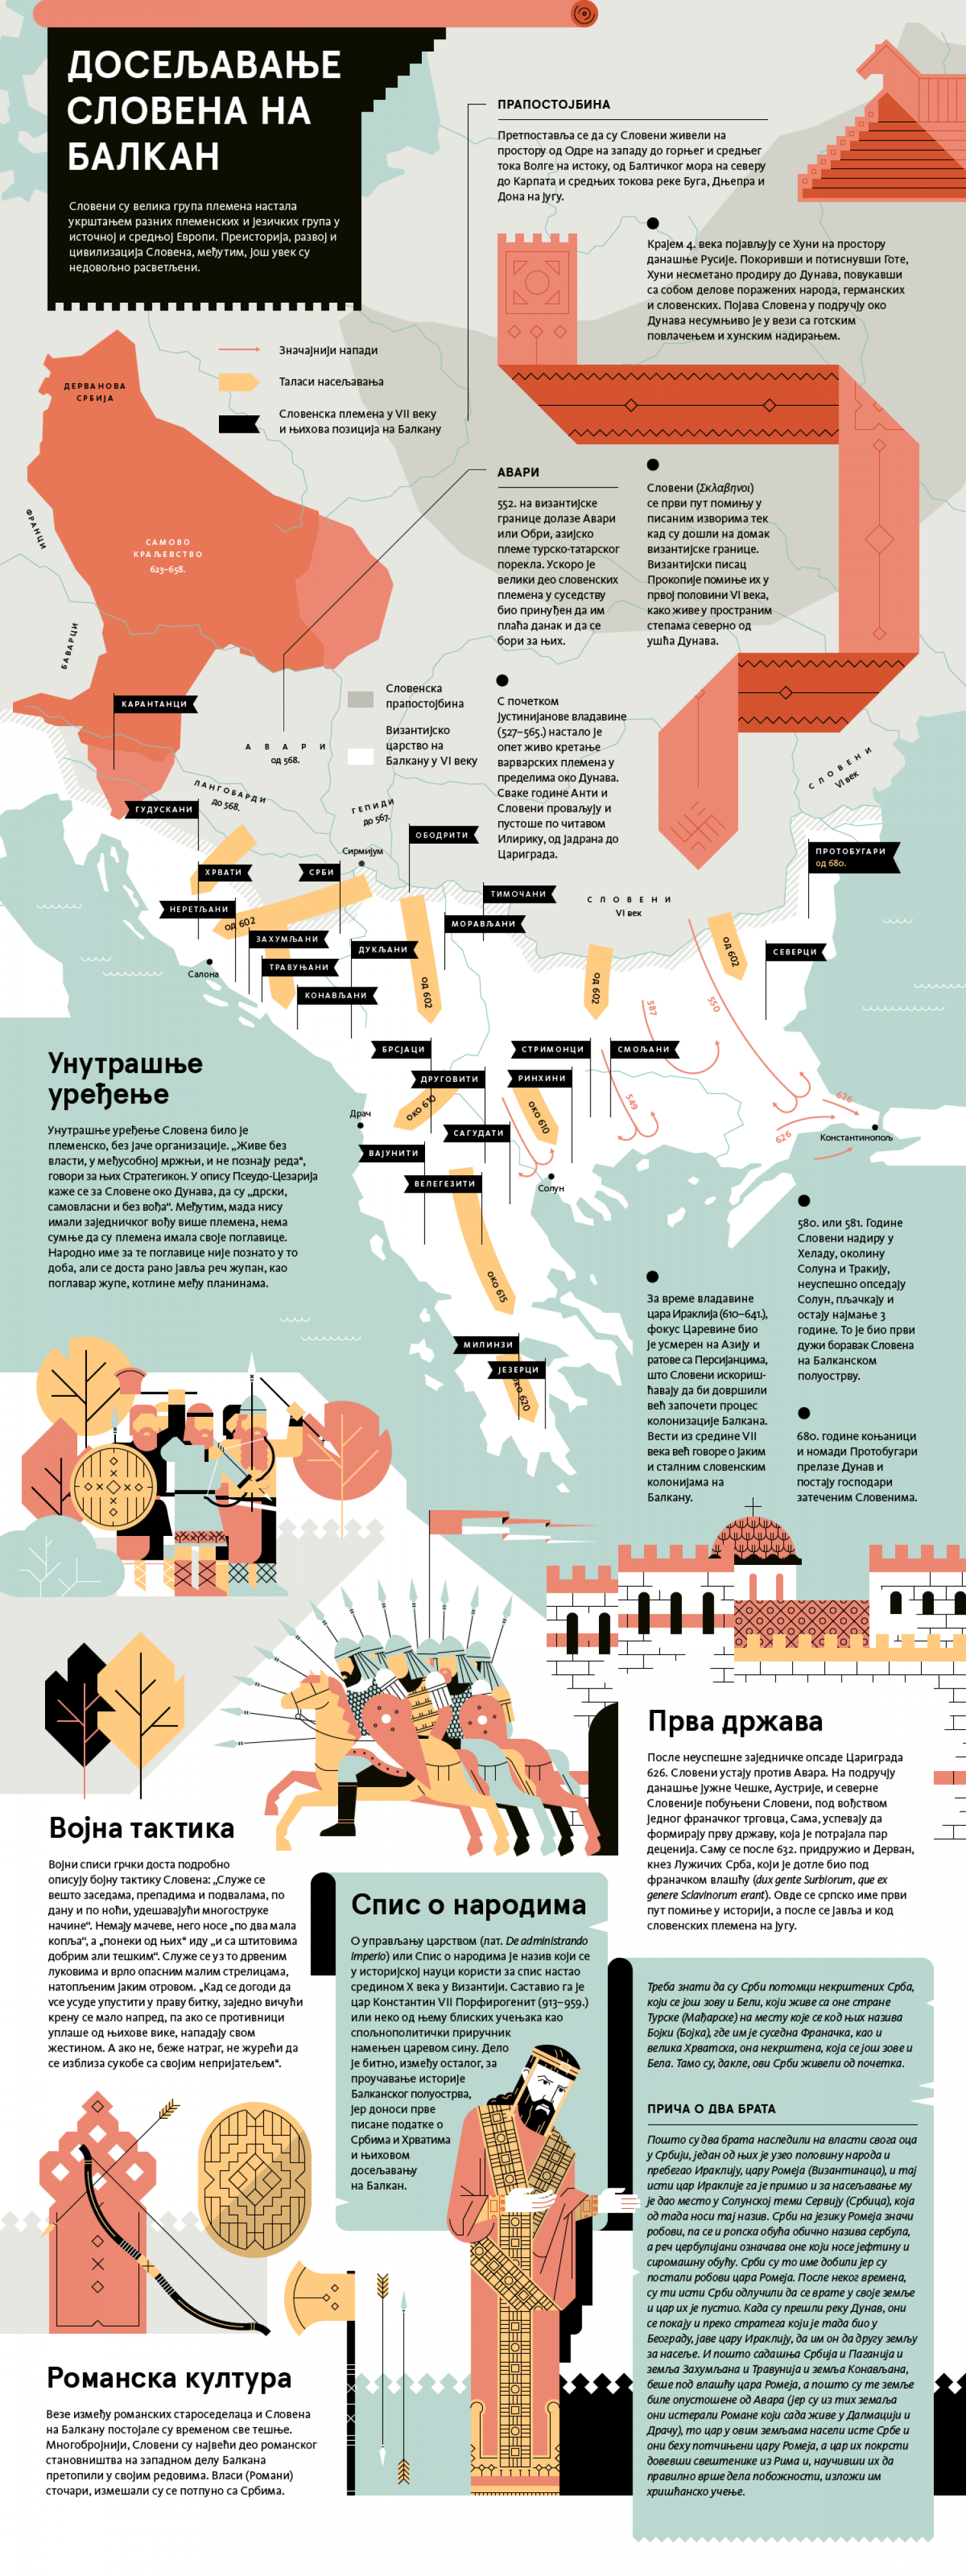 Slavic Migration to Balkans Infographic